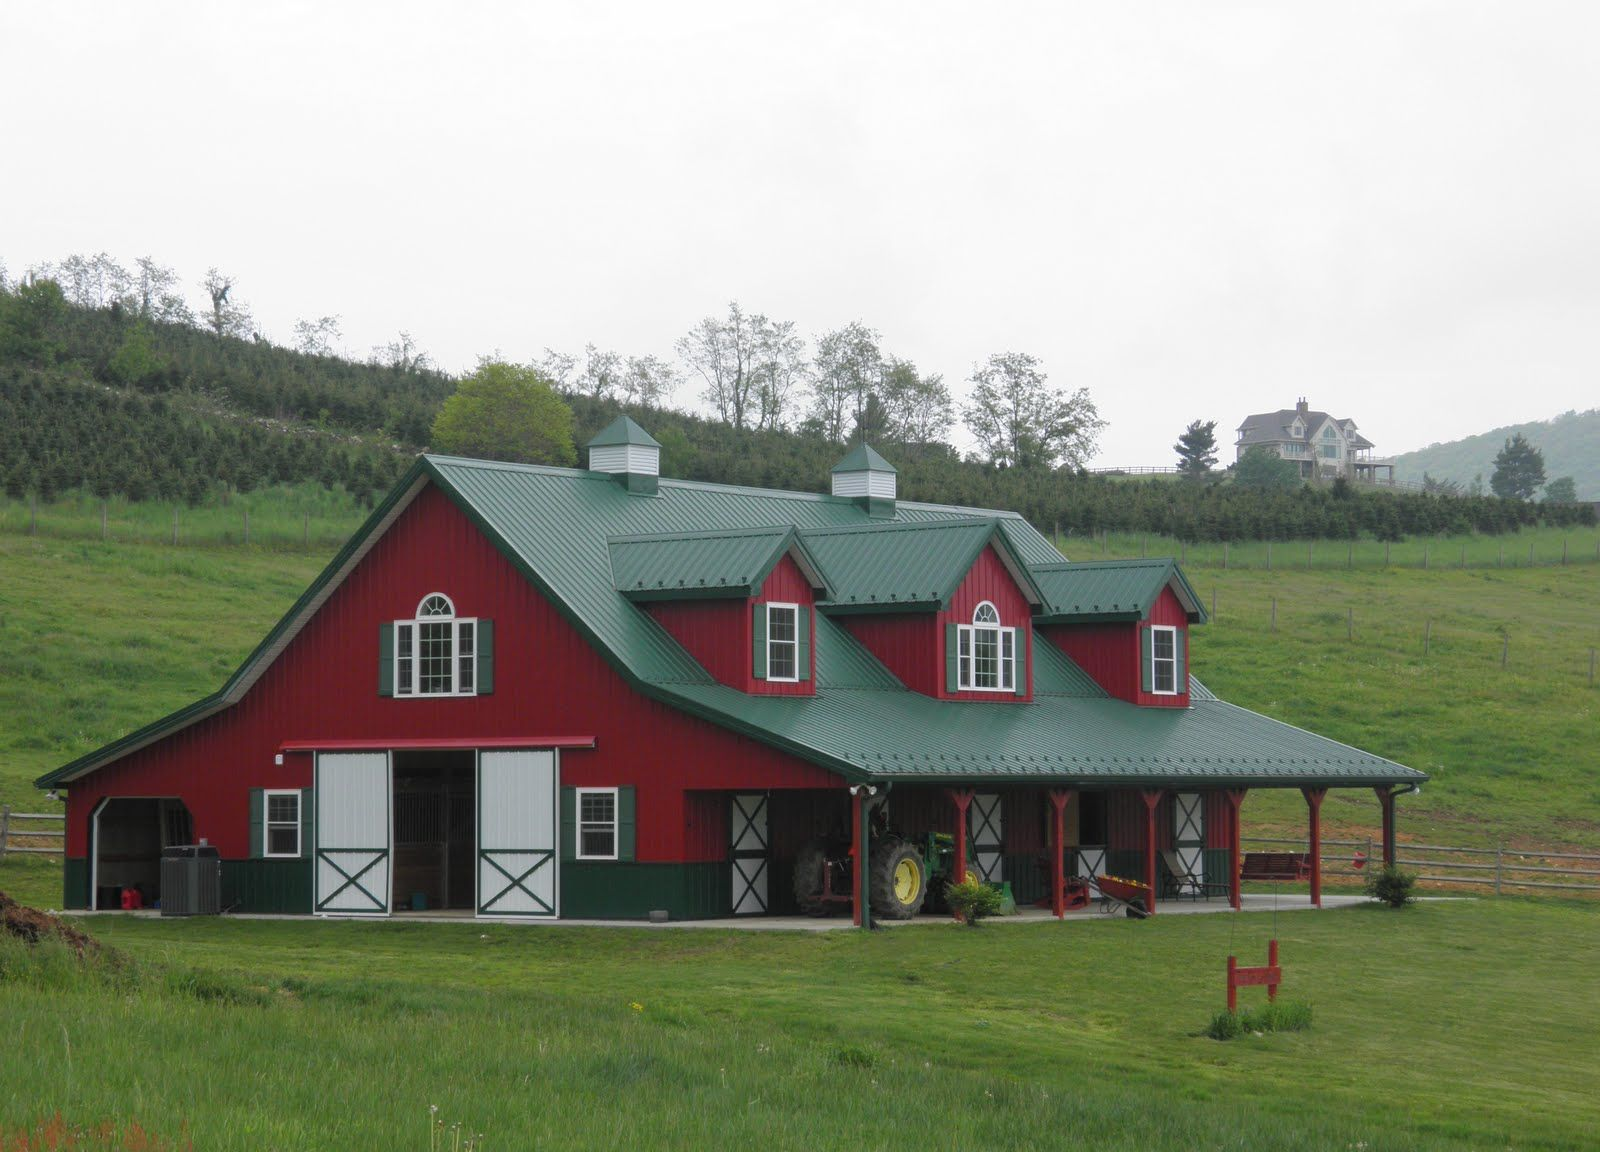 House that looks like red barn images at home in the for Metal barn homes cost